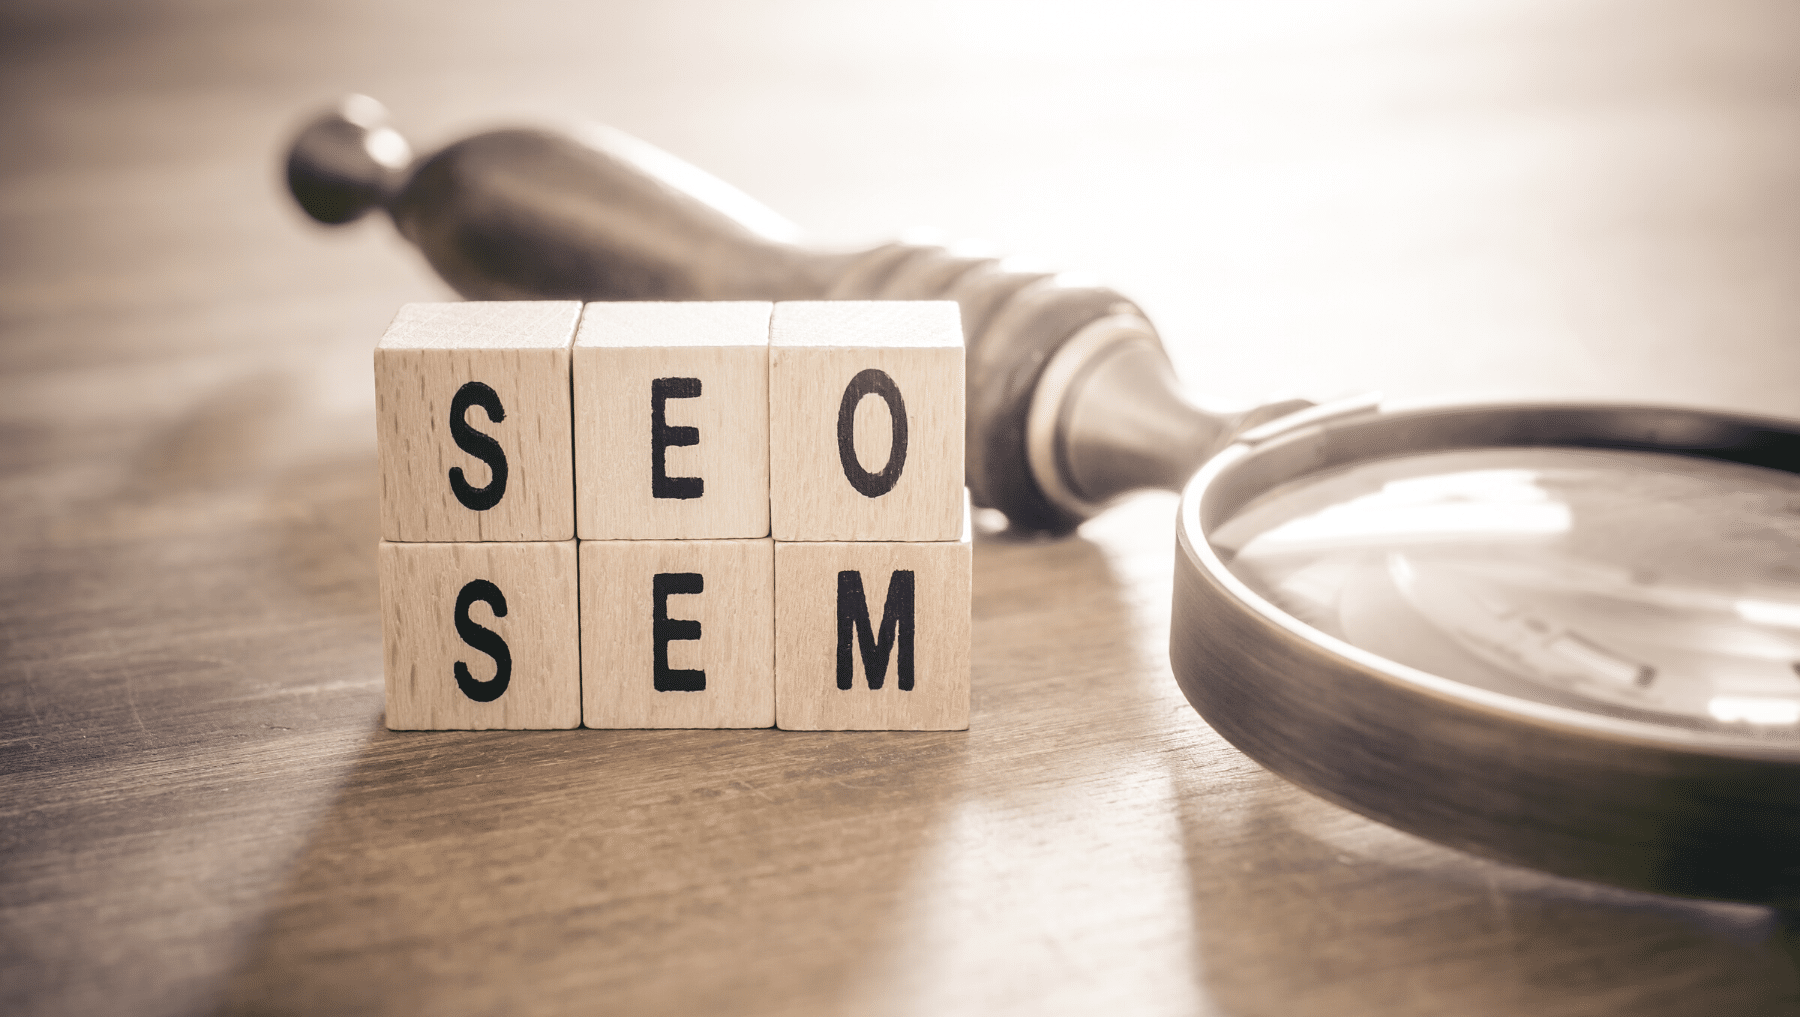 SEO vs SEM: What's the Difference and How Can They Work Together?